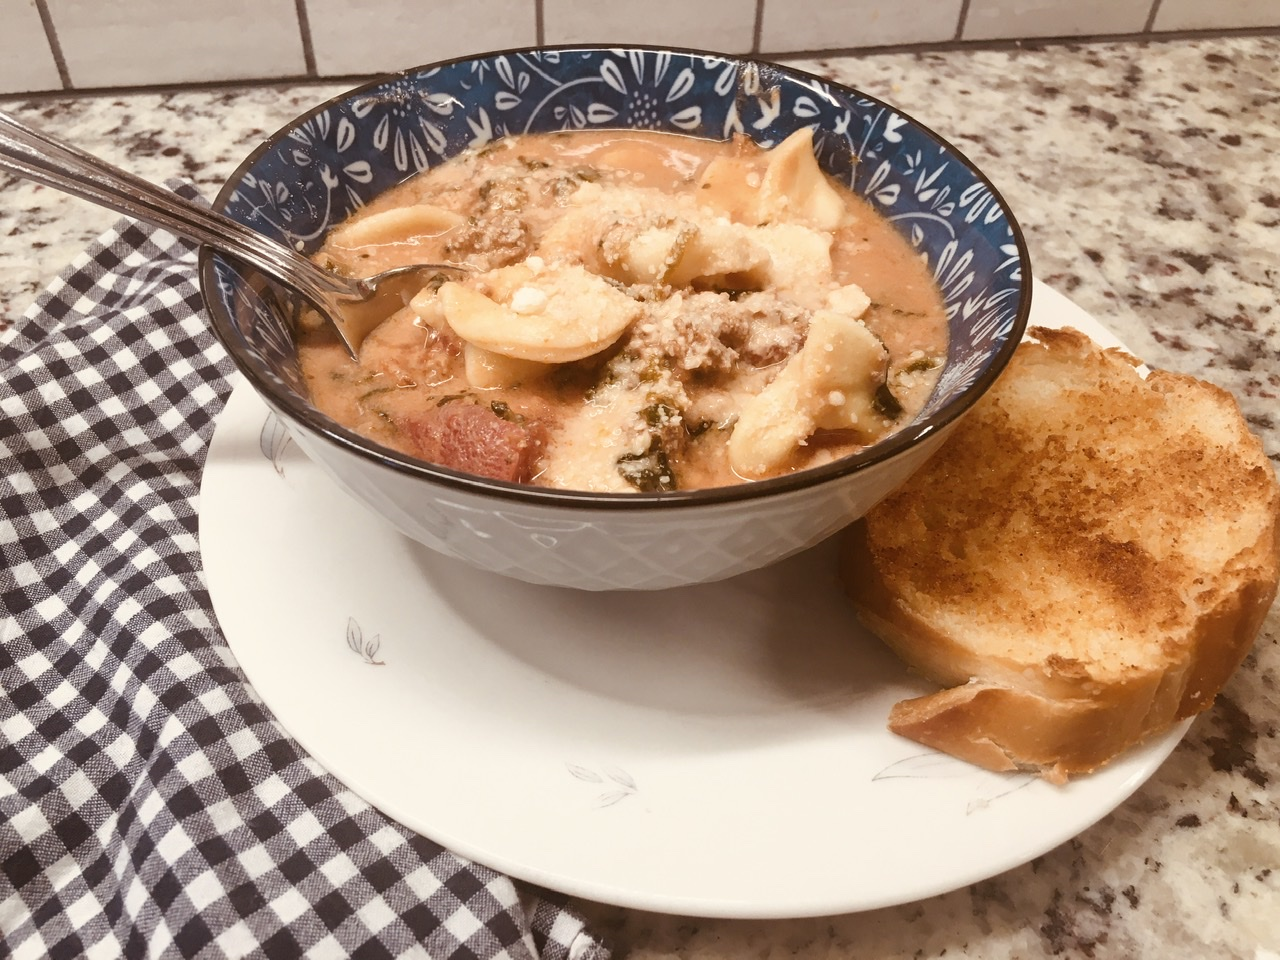 A serving of tortellini soup with a crusty bread on the side.